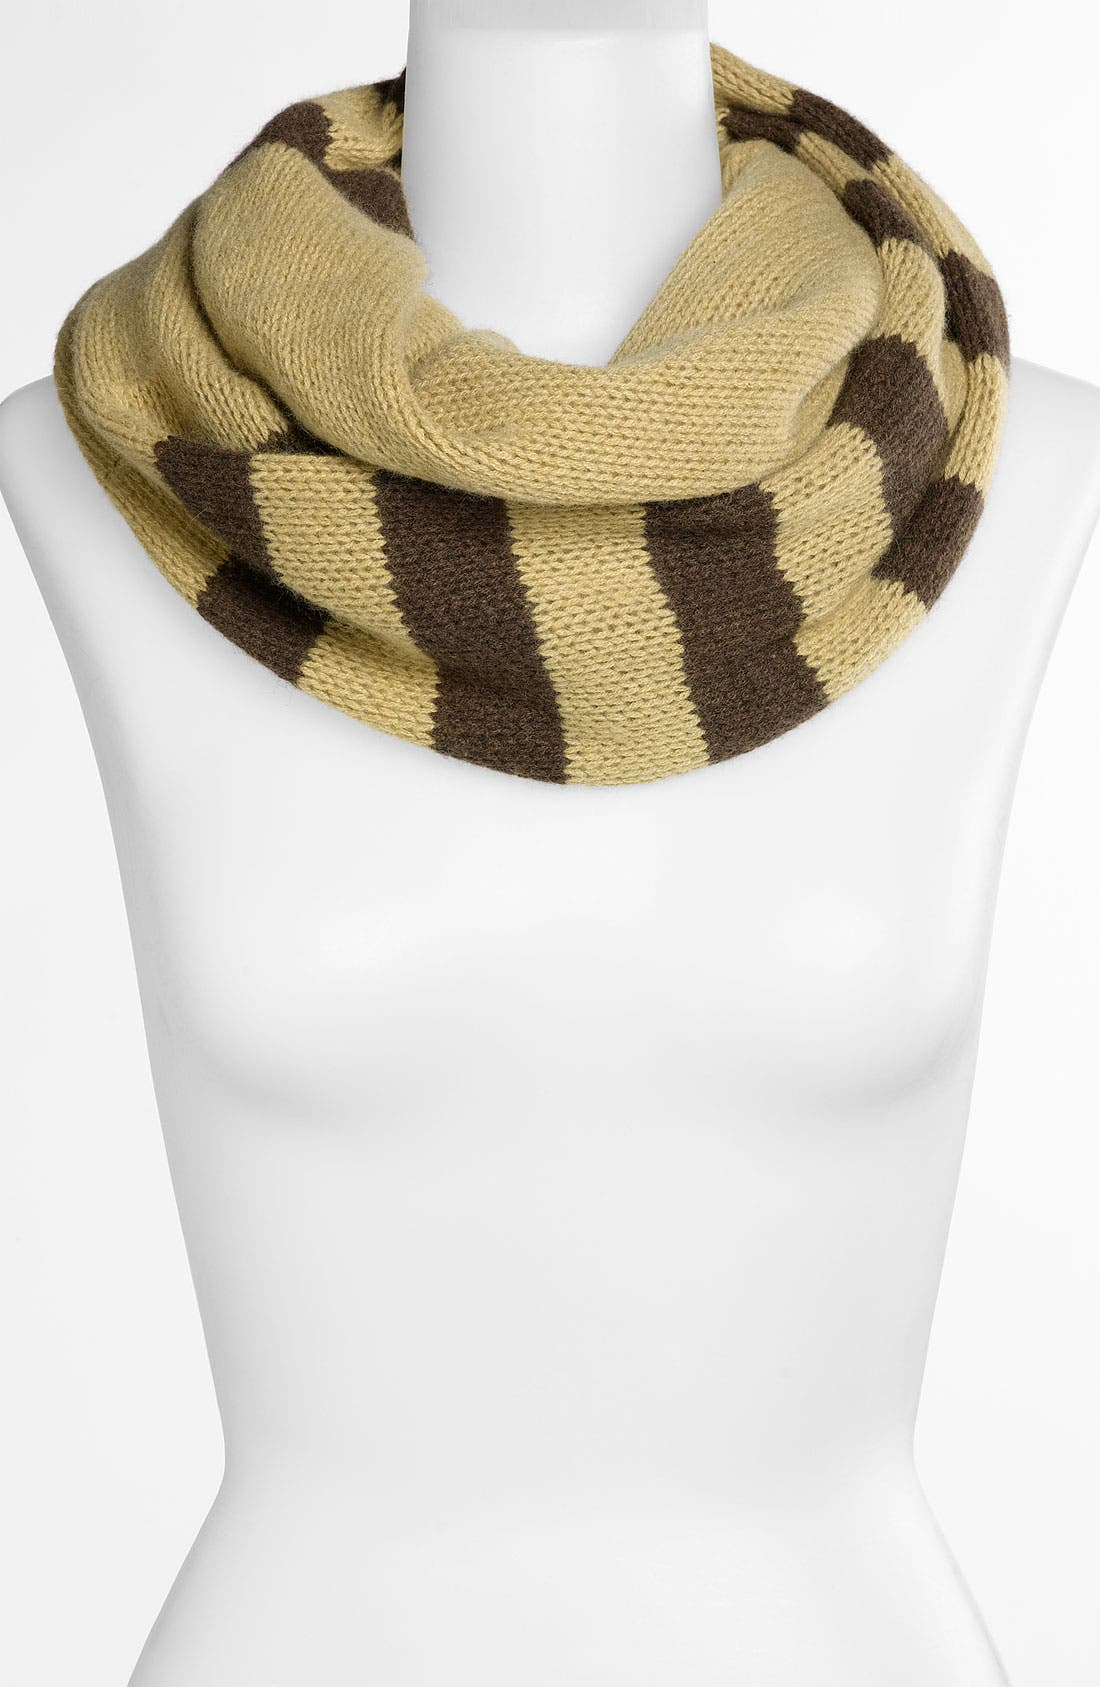 Main Image - Nordstrom Rugby Stripe Cashmere Infinity Scarf